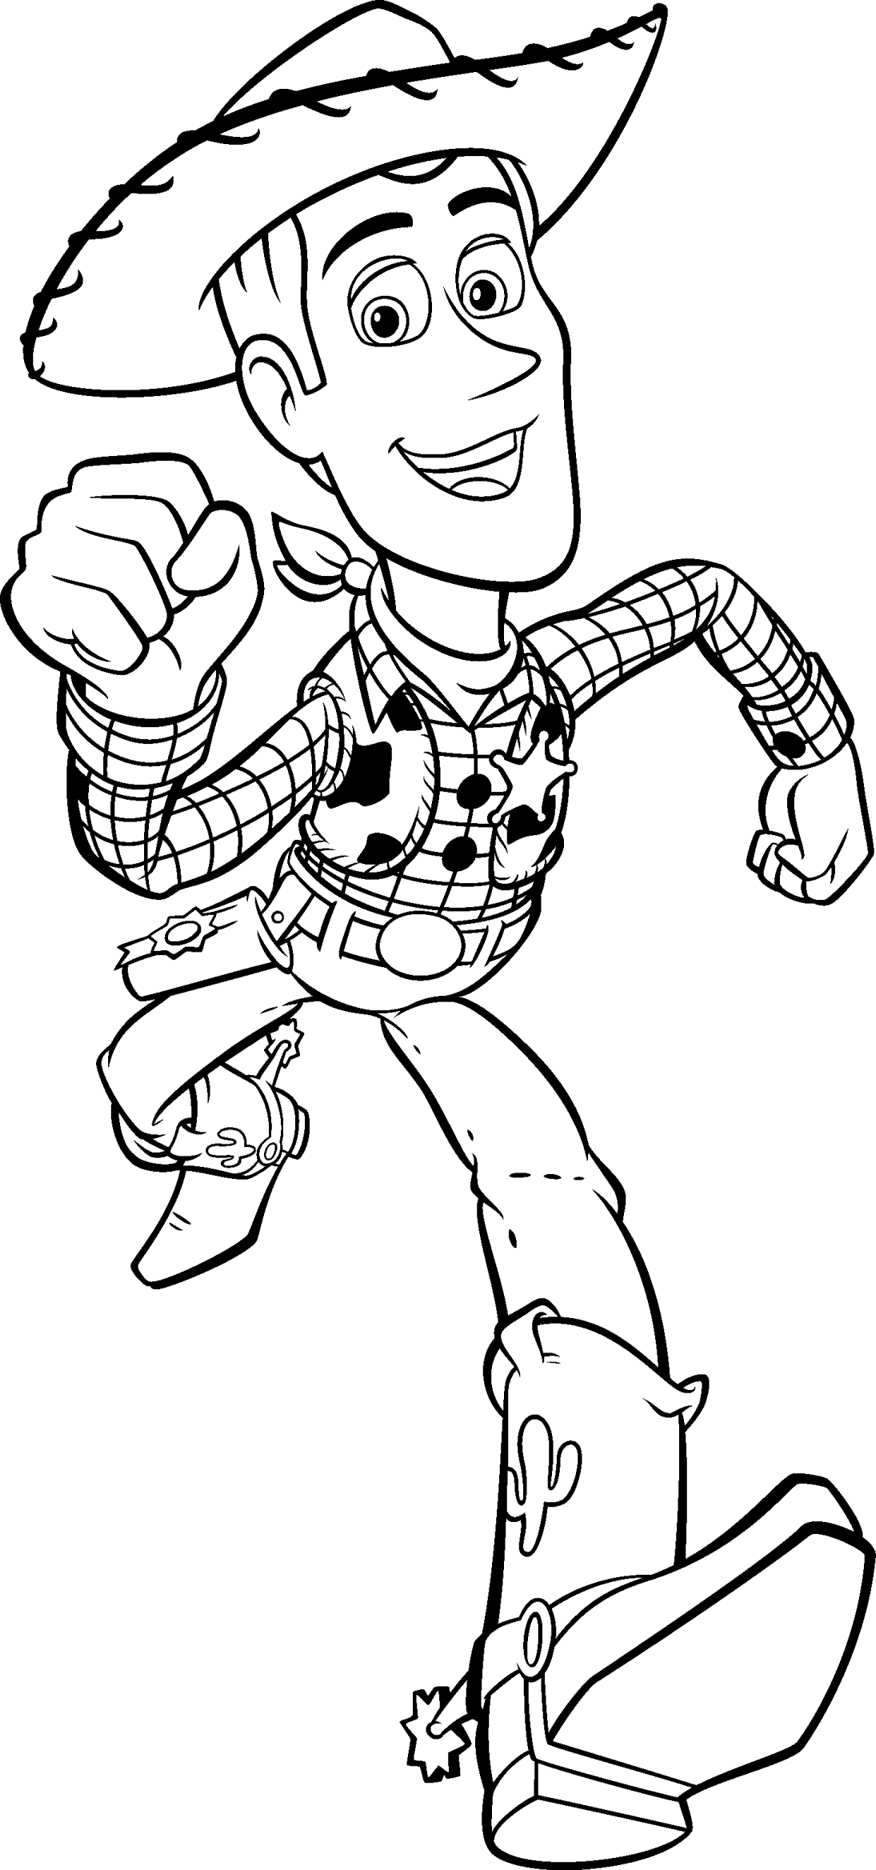 Free Printable Toy Story Coloring